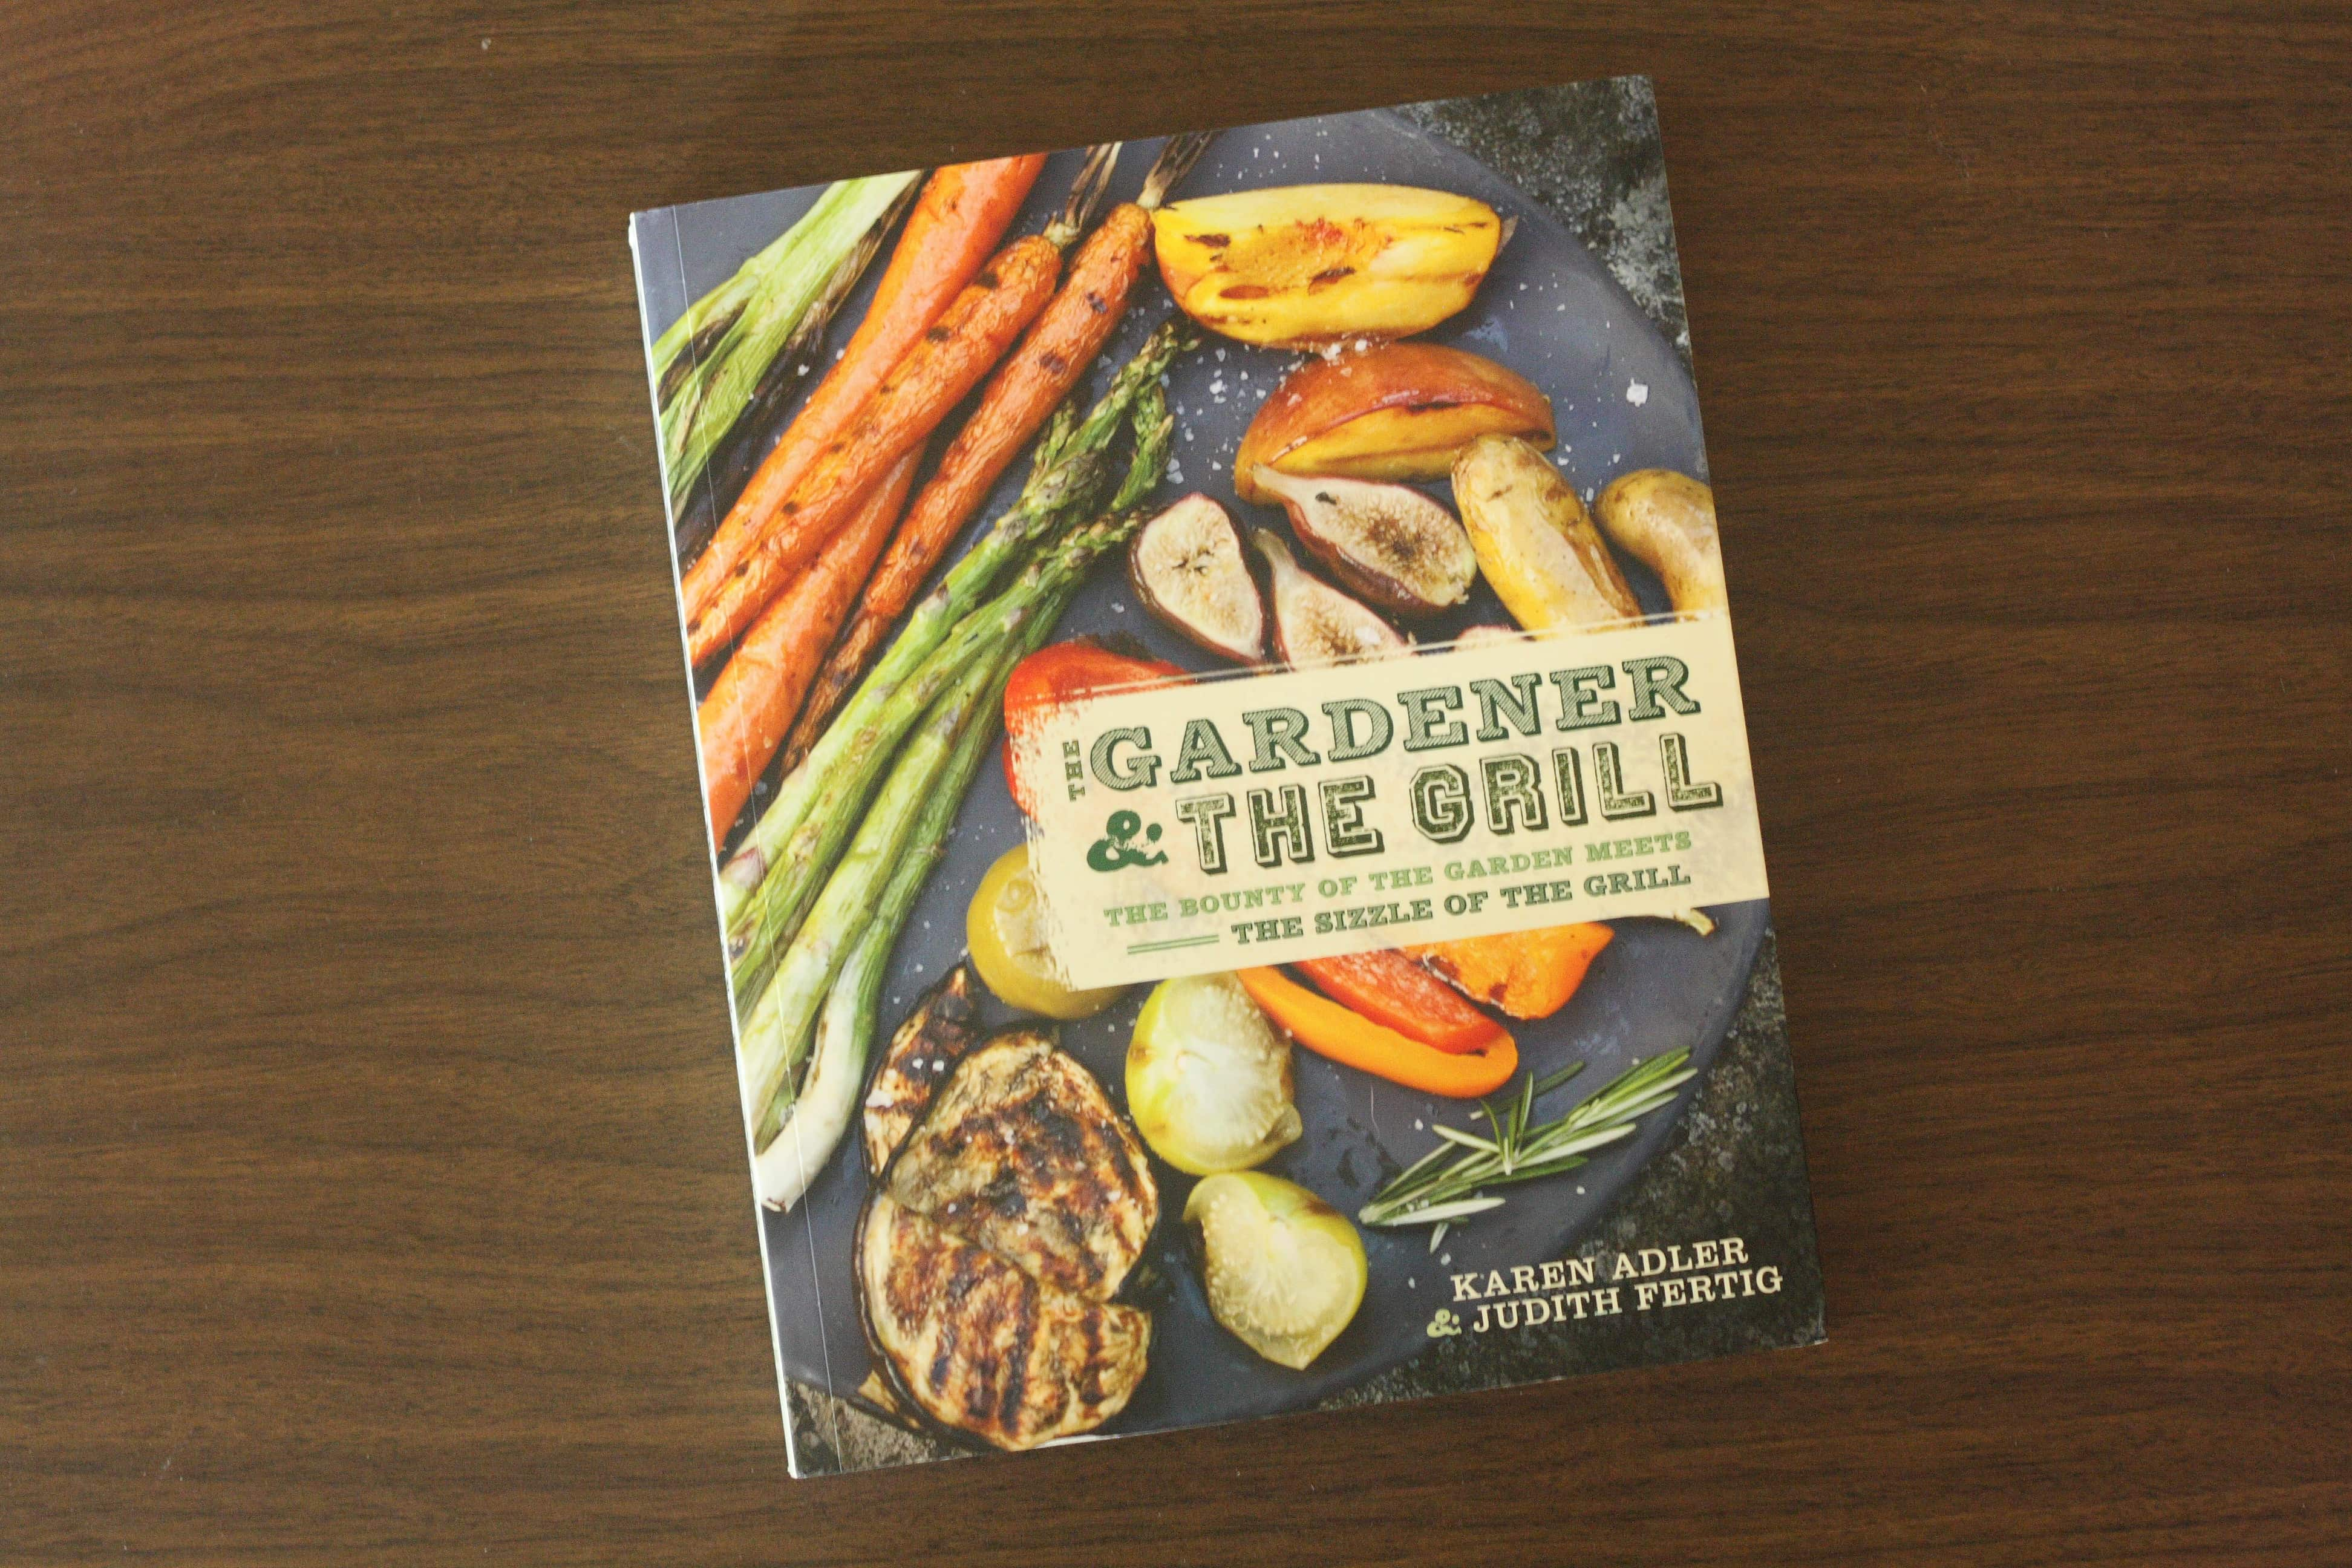 The Gardener and The Grill Cookbook Review by www.chocolatemoosey.com